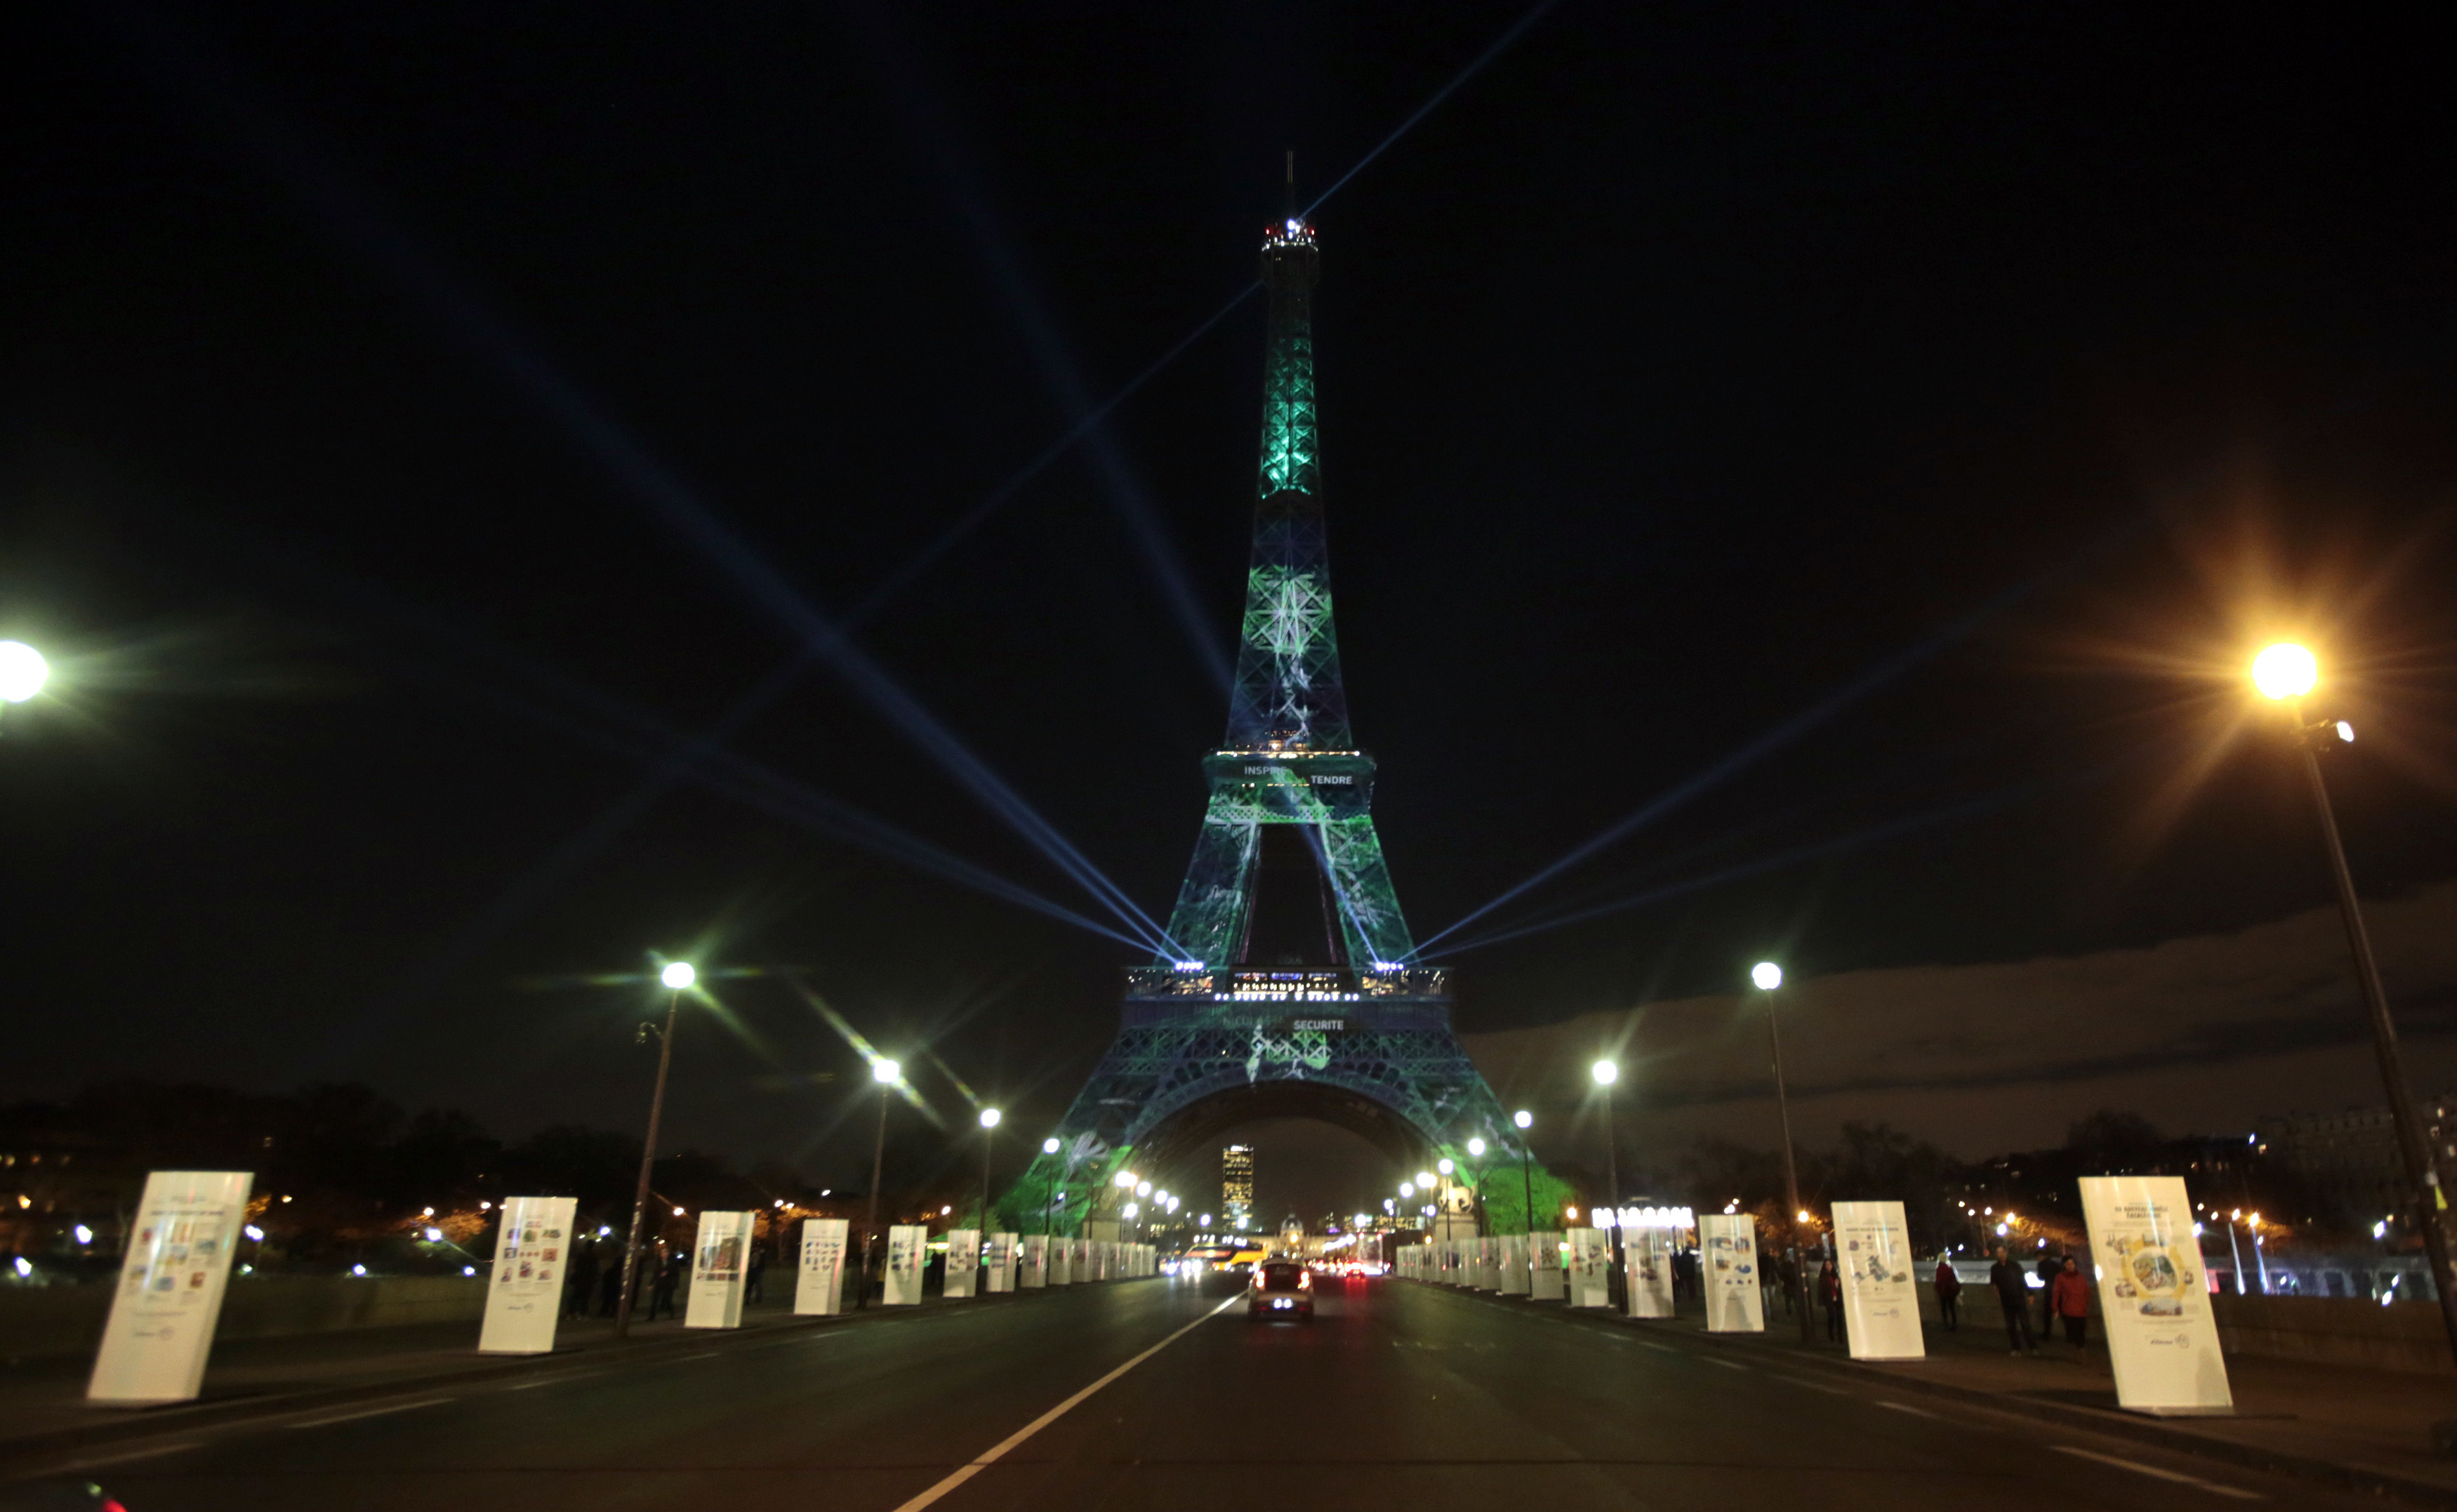 The Eiffel Tower is lit with green lights as part of the events in the French capital to mark the World Climate Change Conference 2015 (COP21), in Paris, France, December 2, 2015.   REUTERS/Eric Gaillard  - LR2EBC21ESFJJ